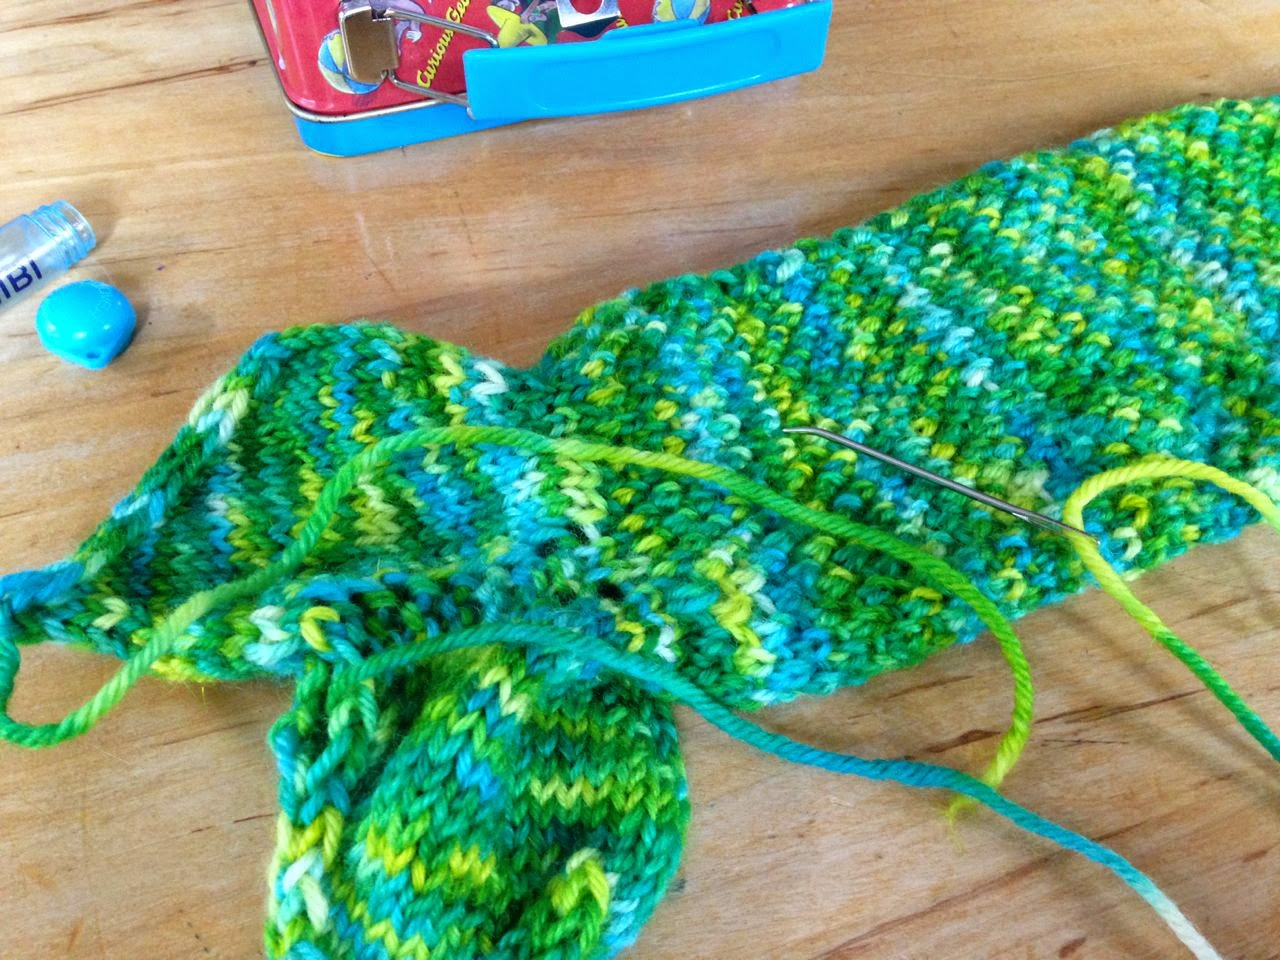 Mermaid Tail Knitting Pattern : Knits in Class: Tale of a Mermaid Tail